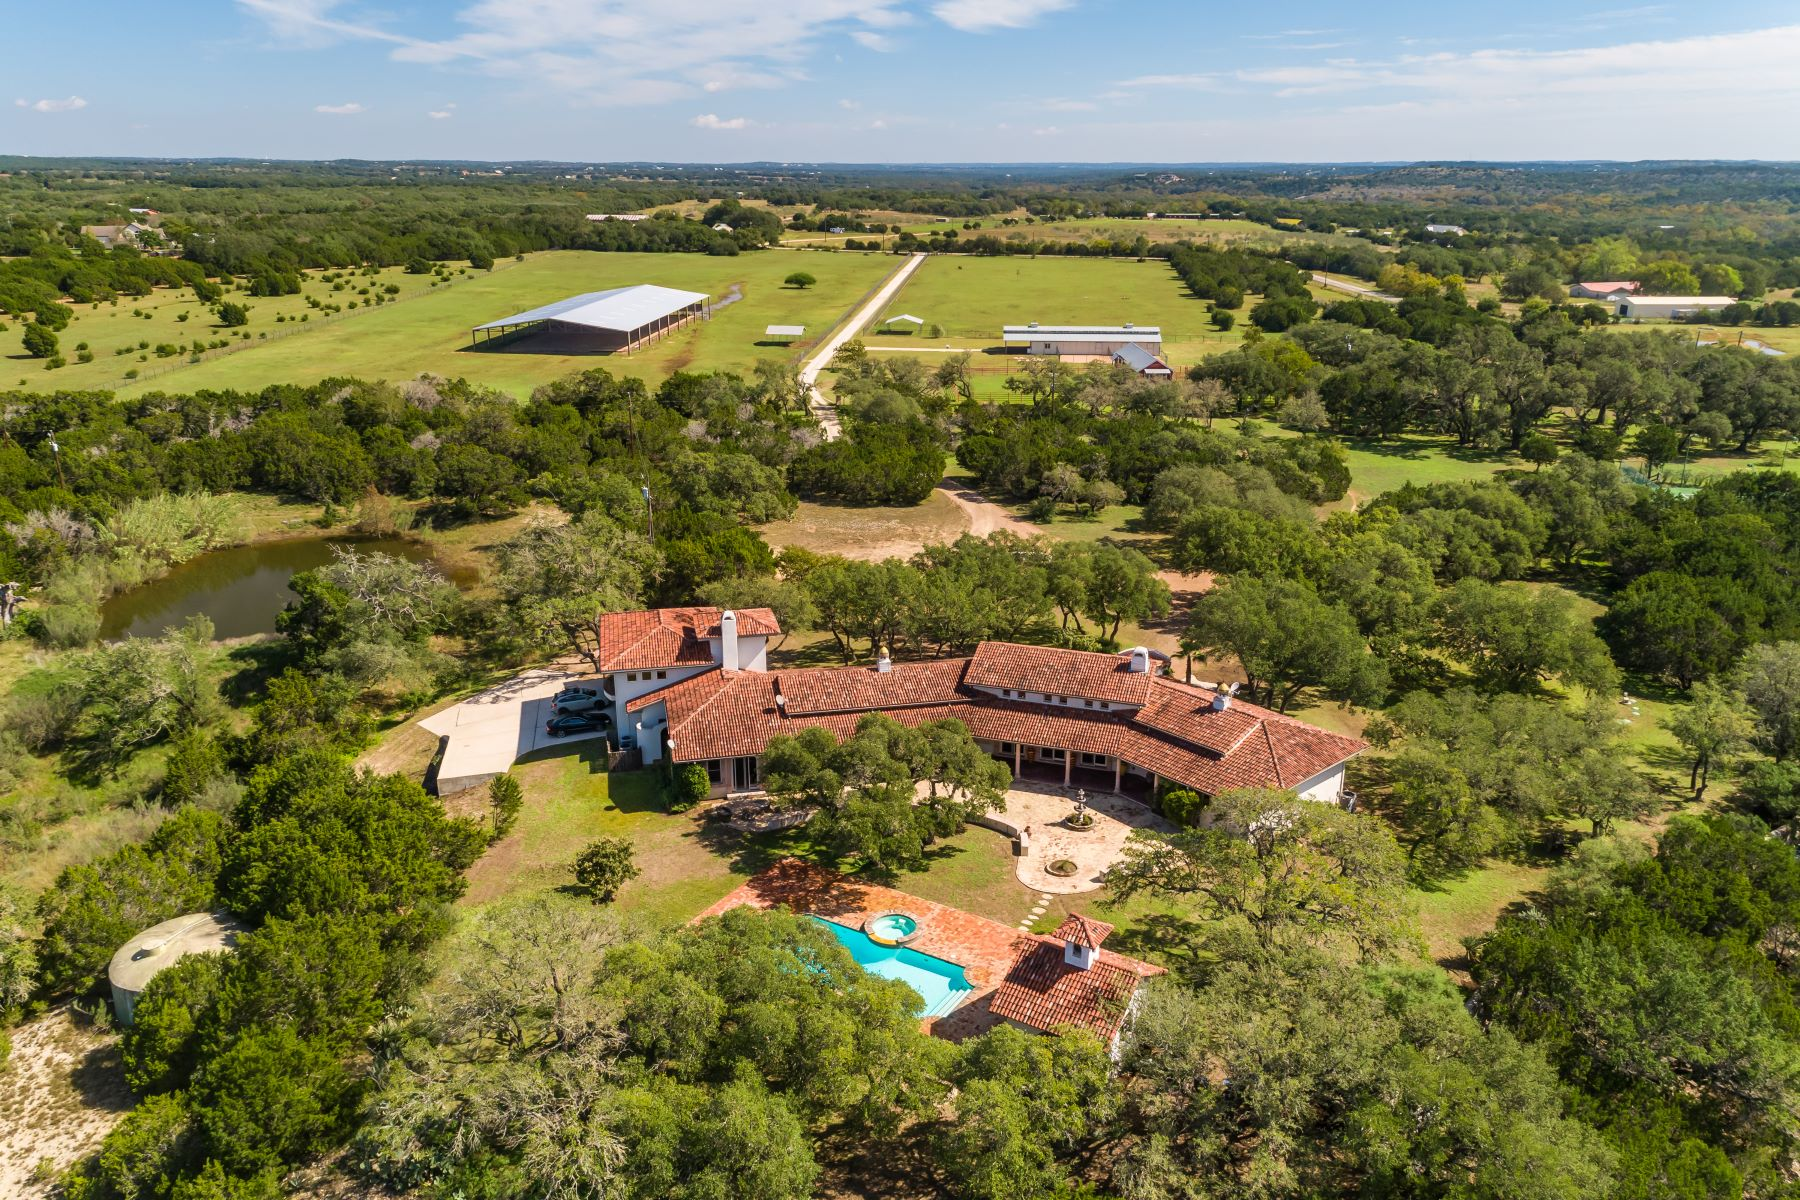 Farm / Ranch / Plantation for Sale at Luxurious Old World Equestrian Estate 2701 McGregor Lane Dripping Springs, Texas 78620 United States